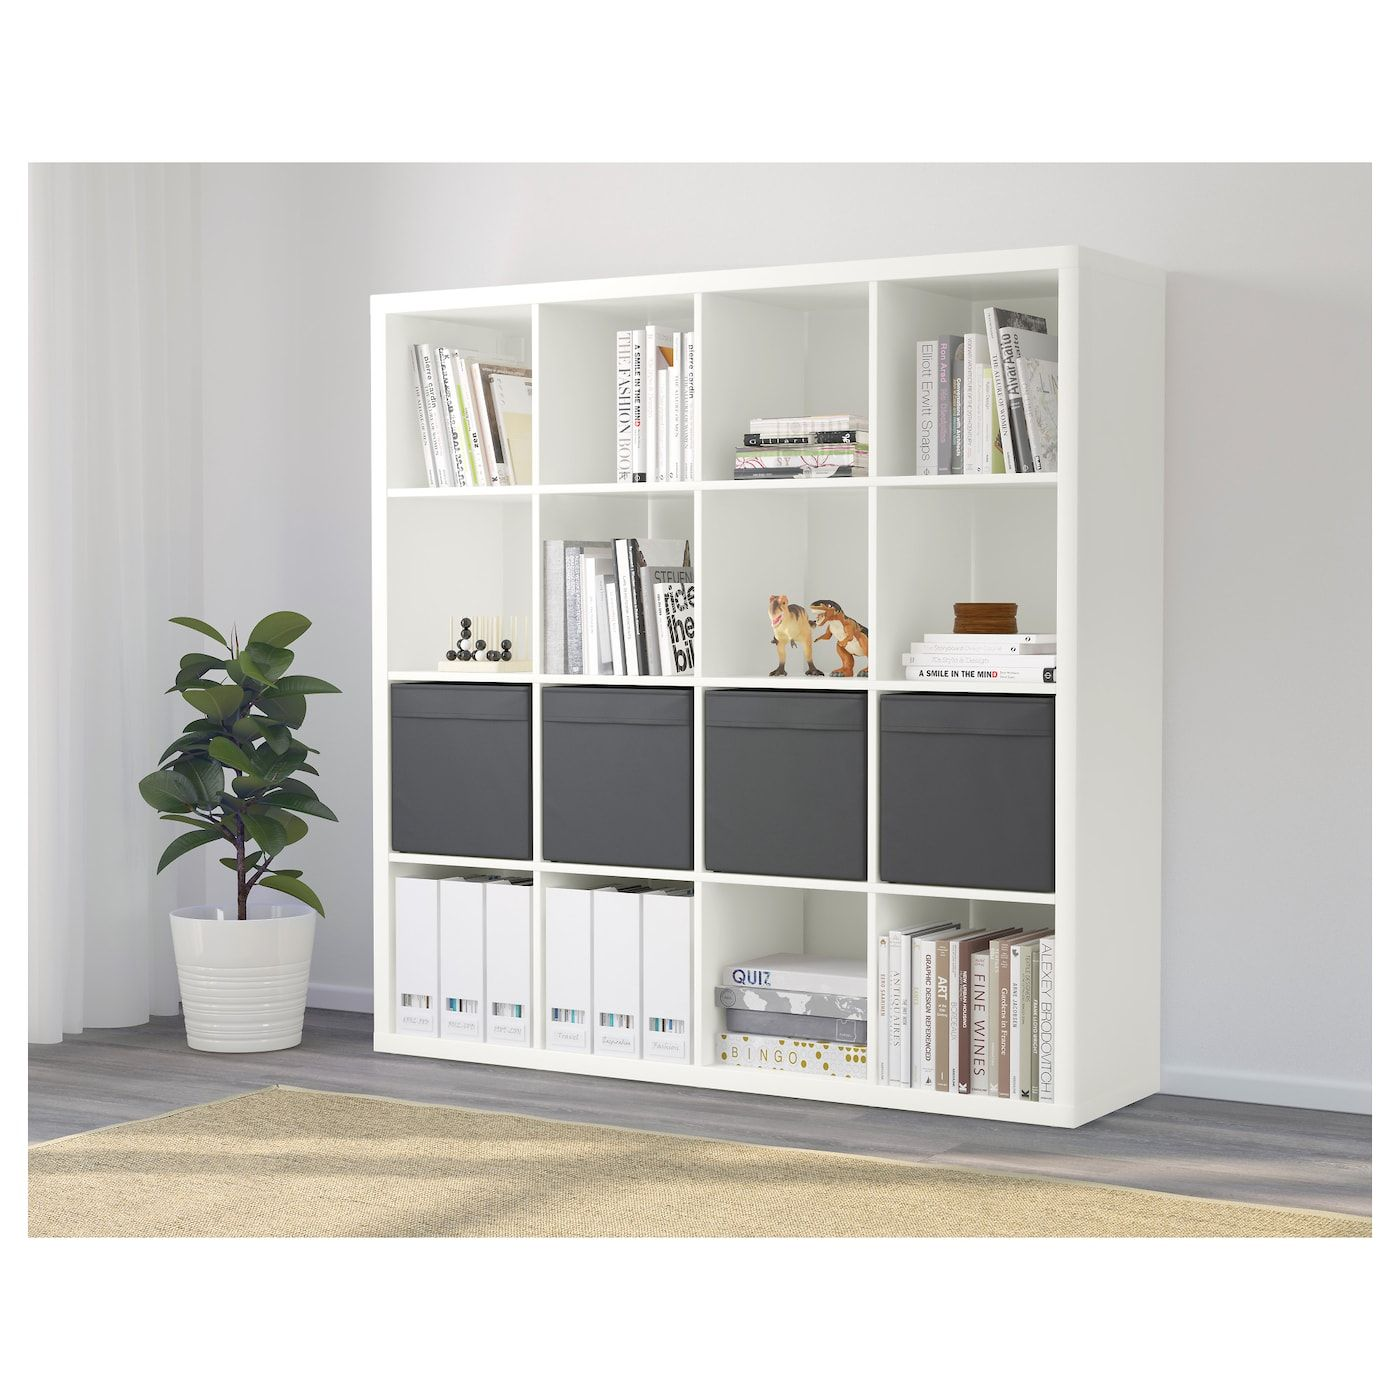 IKEA – KALLAX Shelf unit with 4 inserts White